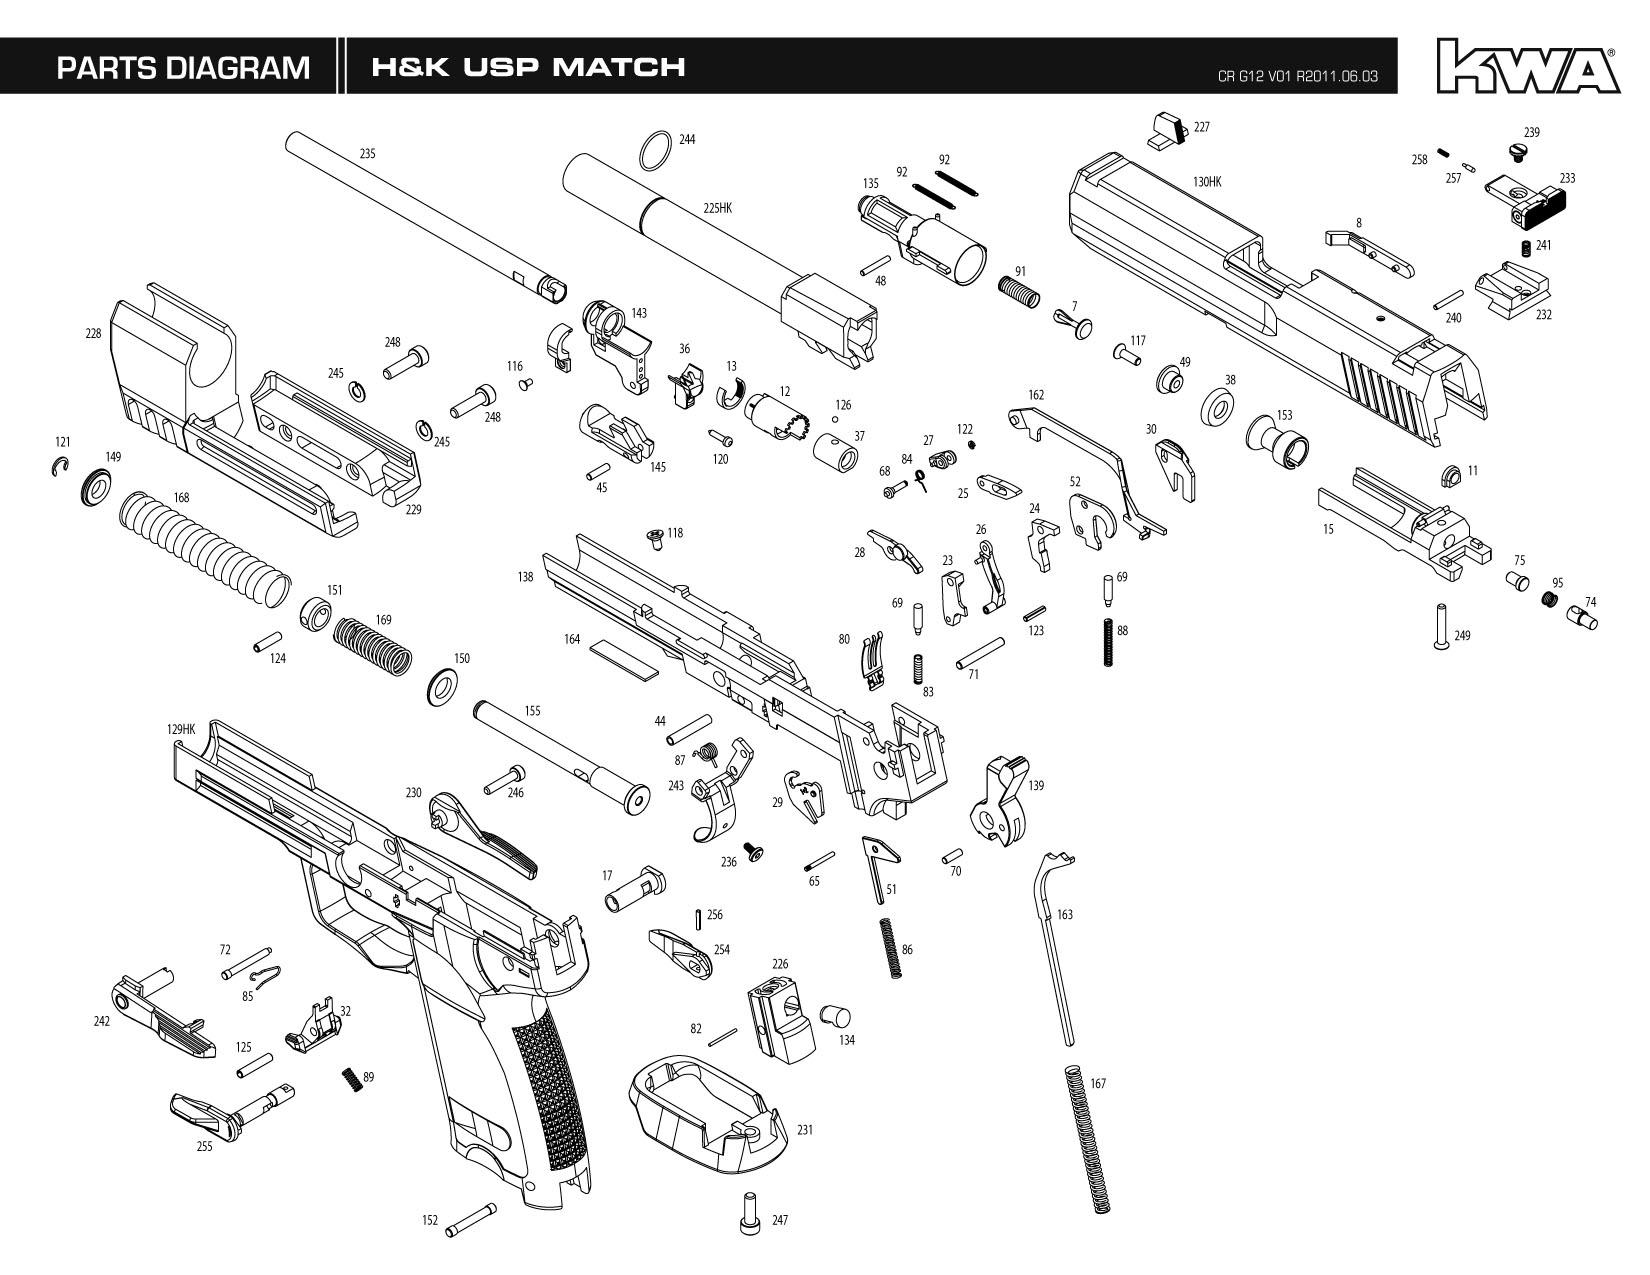 manual kwauspm 1 free download kwa h&k usp match gas blowback instruction manual